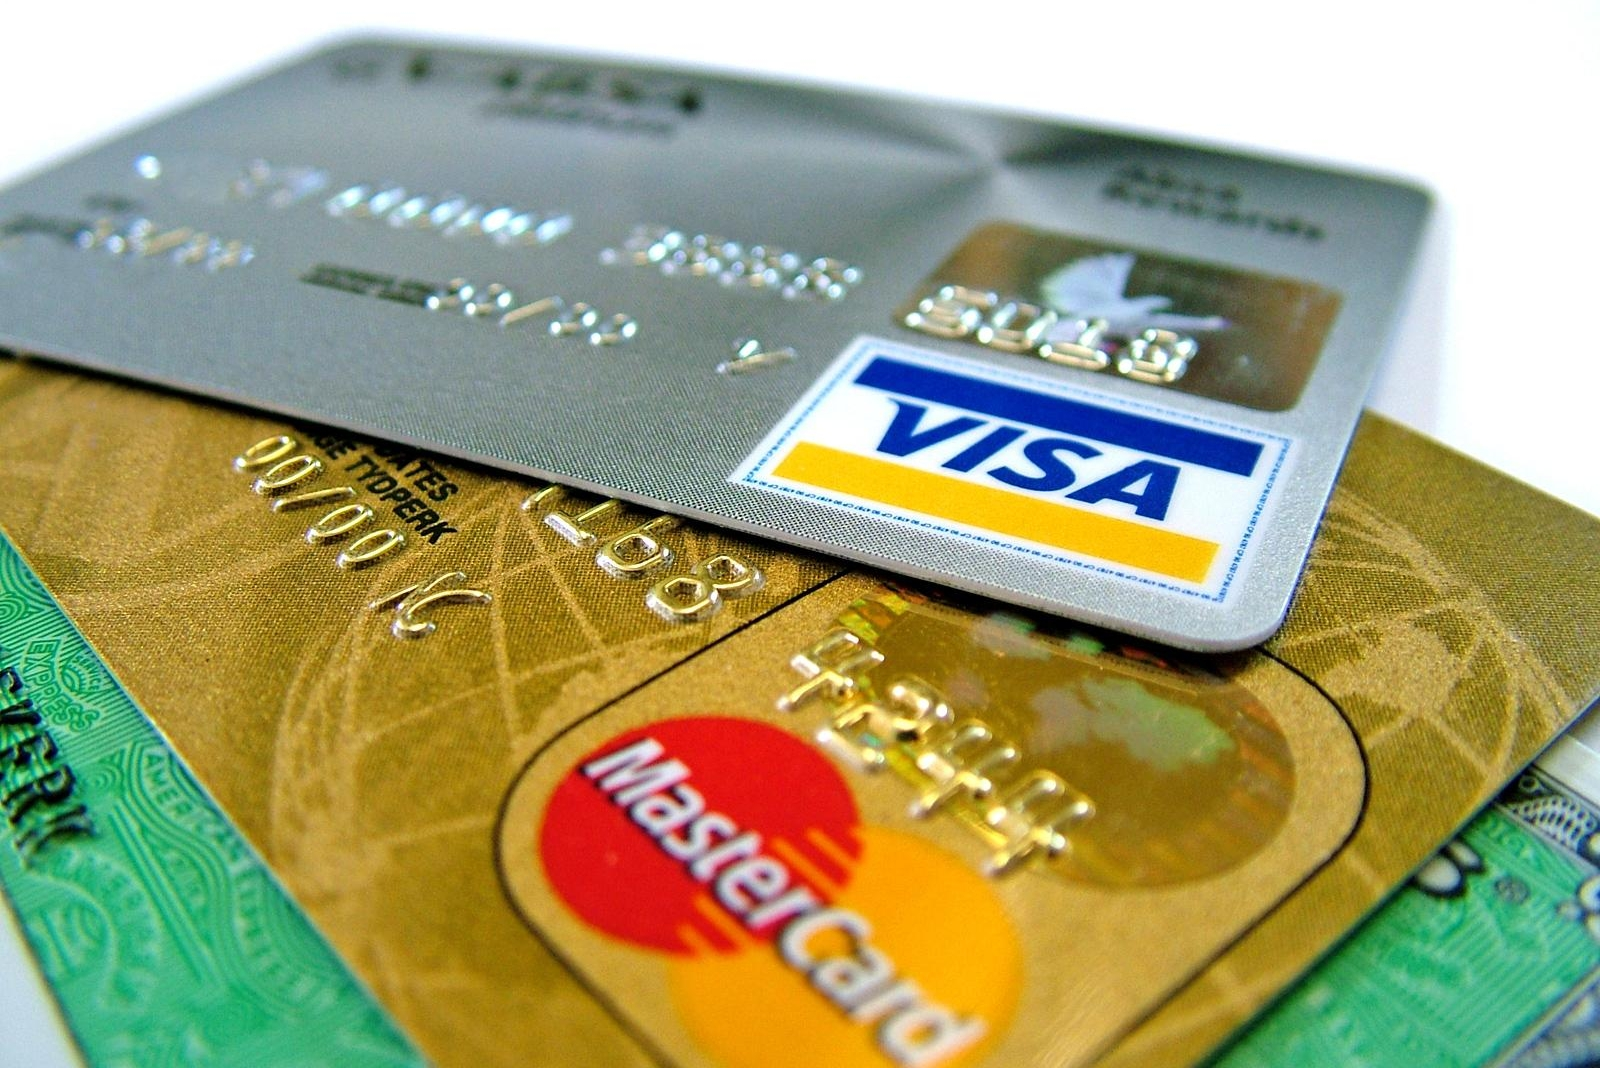 credit card - How To Commit Credit Card Fraud Without Getting Caught